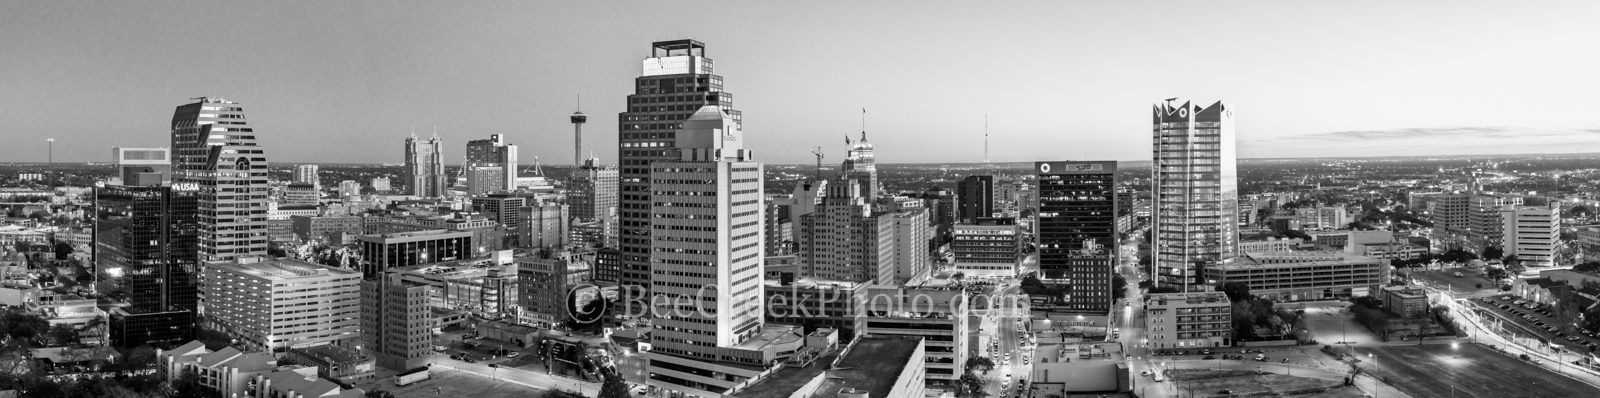 San Antonio, Skyline, Night, Panorama, pano, Frost Tower, Marriott, Grand Hyatt, Tower of the Americas, hemisphere, drury hotel, downtown, texas, Frost, building, cityscape, city, urban